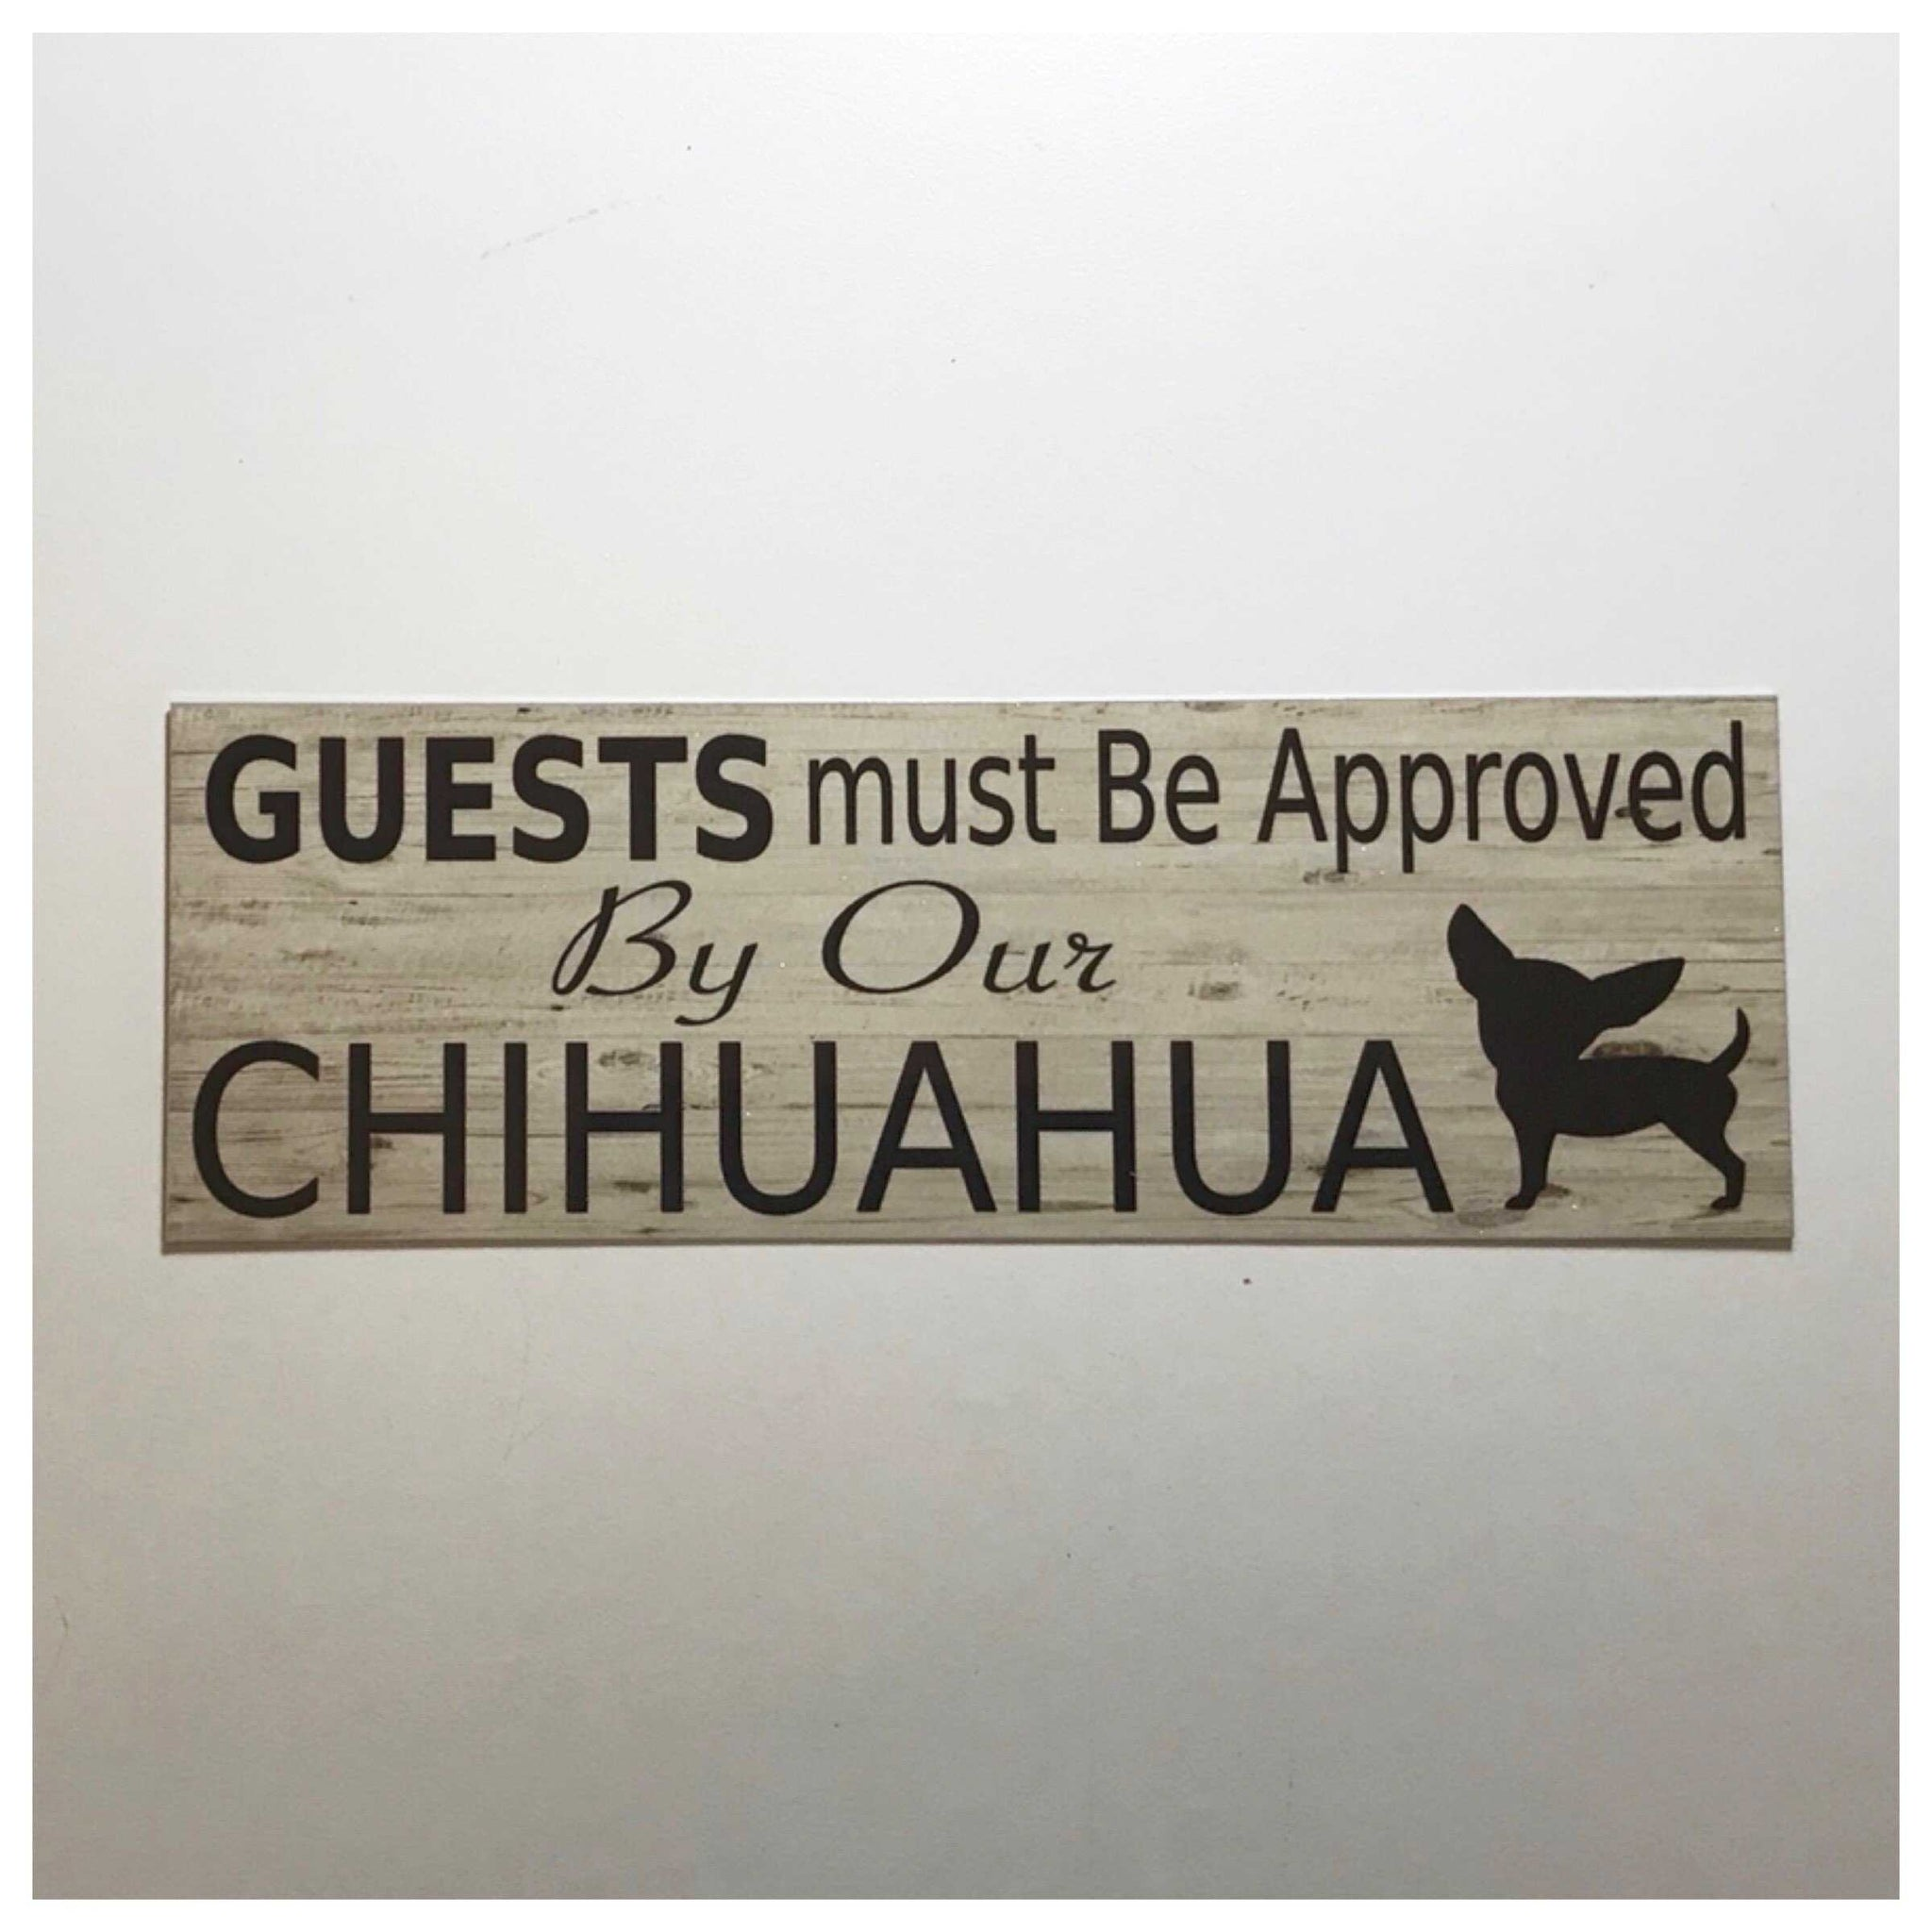 Chihuahua Dog Guests Must Be Approved By Our Sign - The Renmy Store